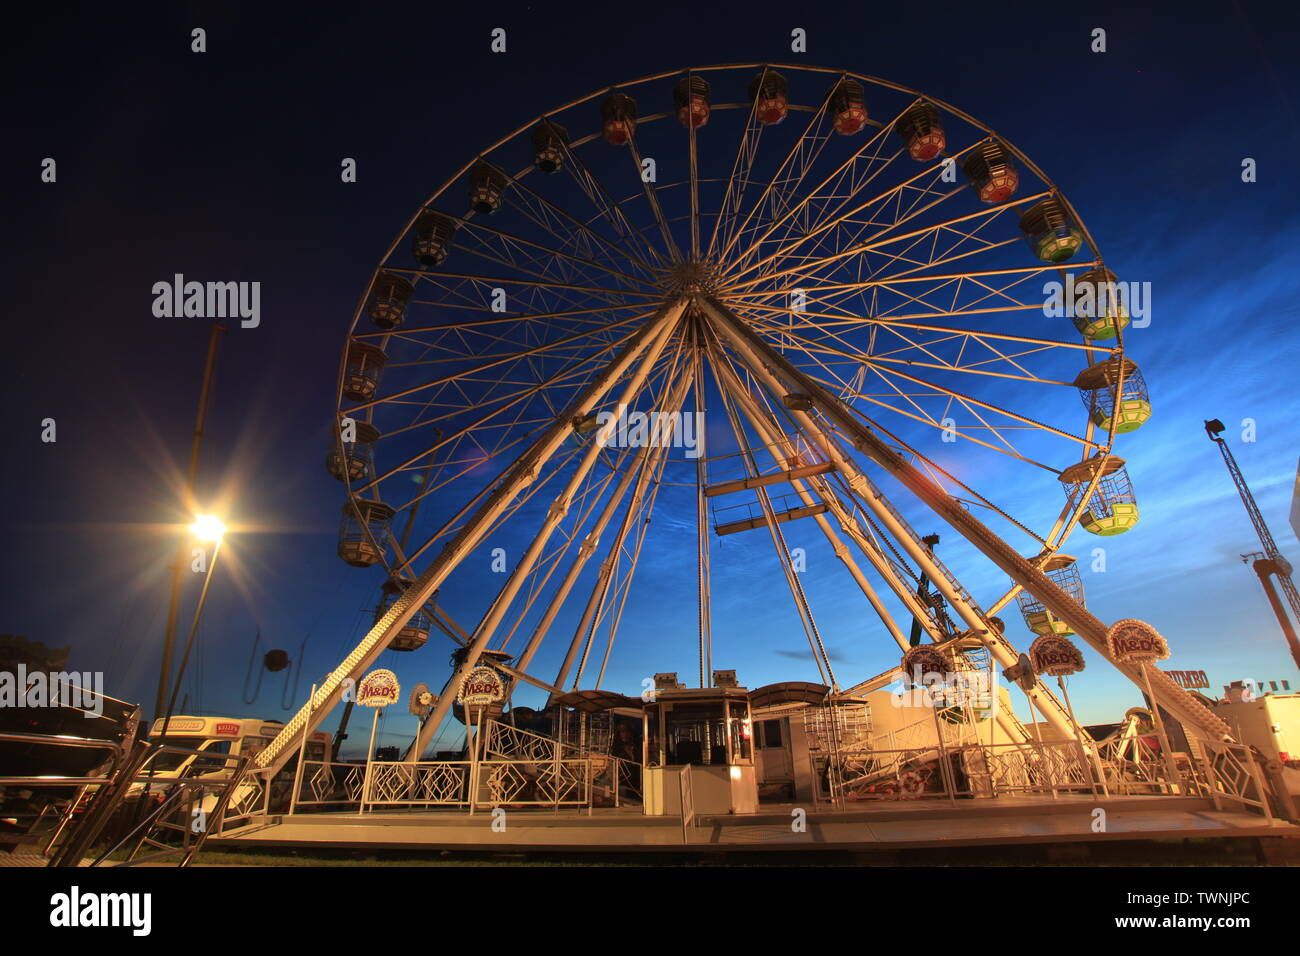 Newcastle upon Tyne, UK. 22th June, 2019. Noctilucent clouds with the hoppings funfair on town moor. Credit:David Whinham/Alamy Live News - Stock Image